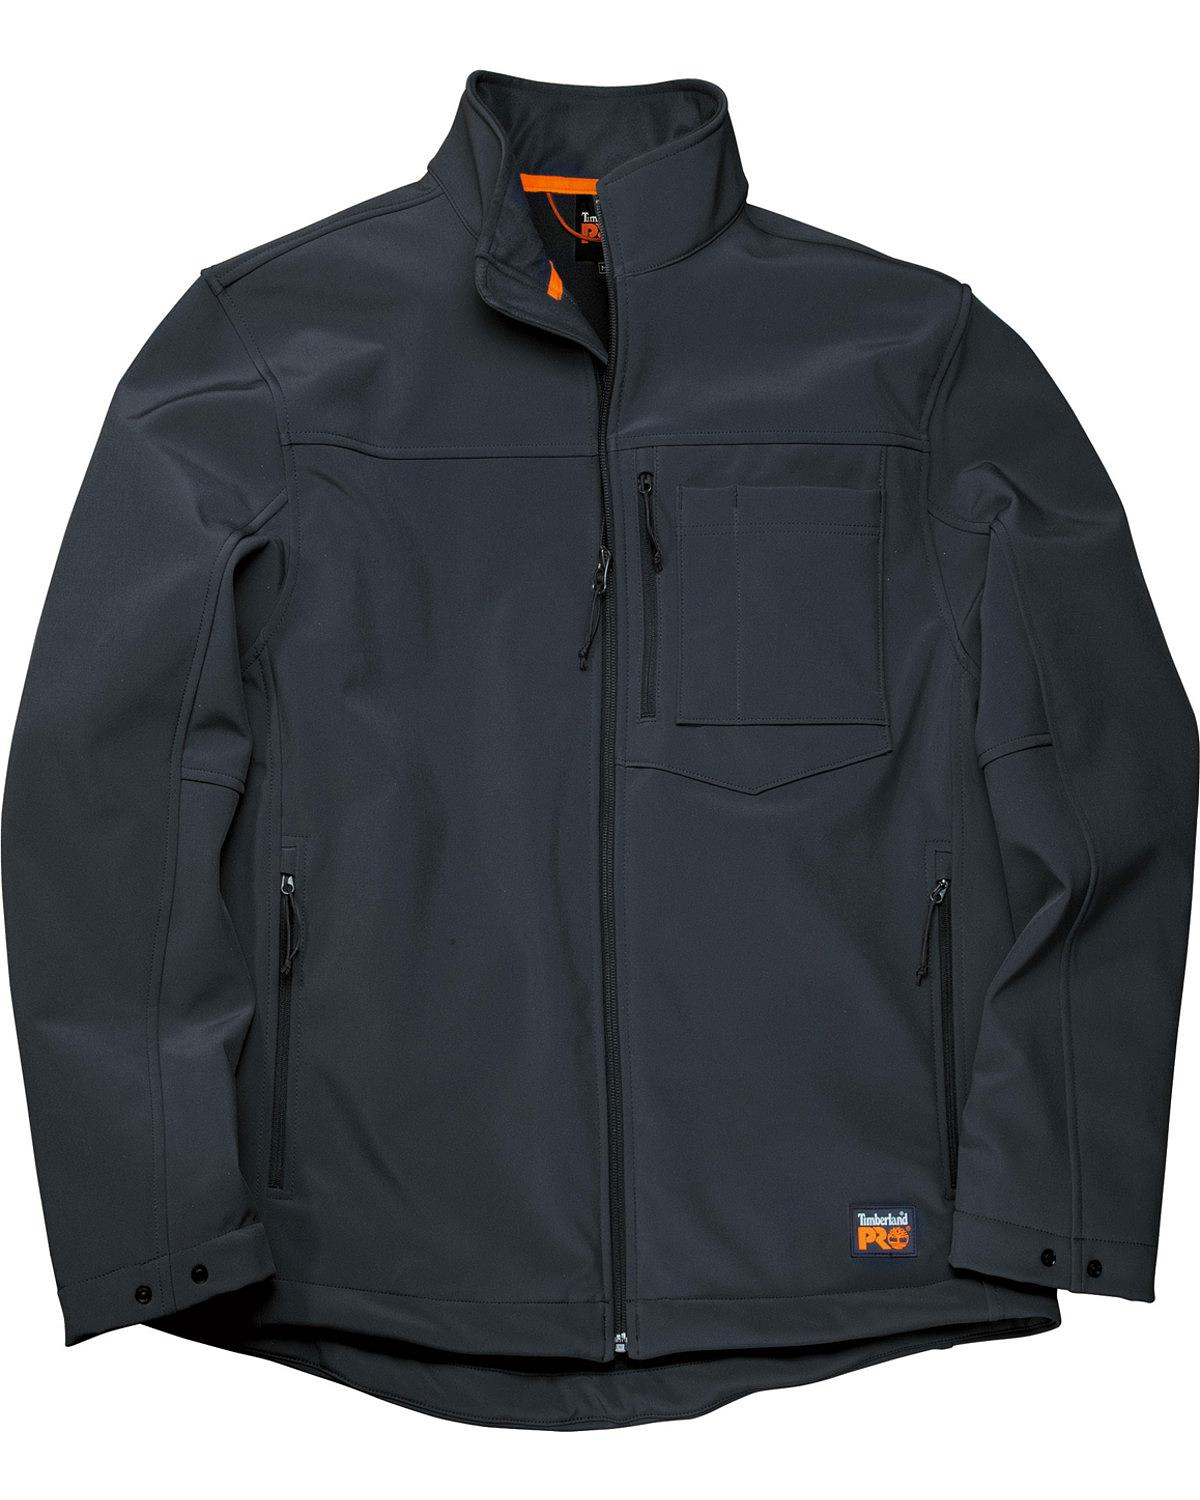 df1ce497fa Timberland Men's Power Zip Windproof Softshell Jacket - TB0A1HN6015 XL  Black. About this product. Picture 1 of 2; Picture 2 of 2